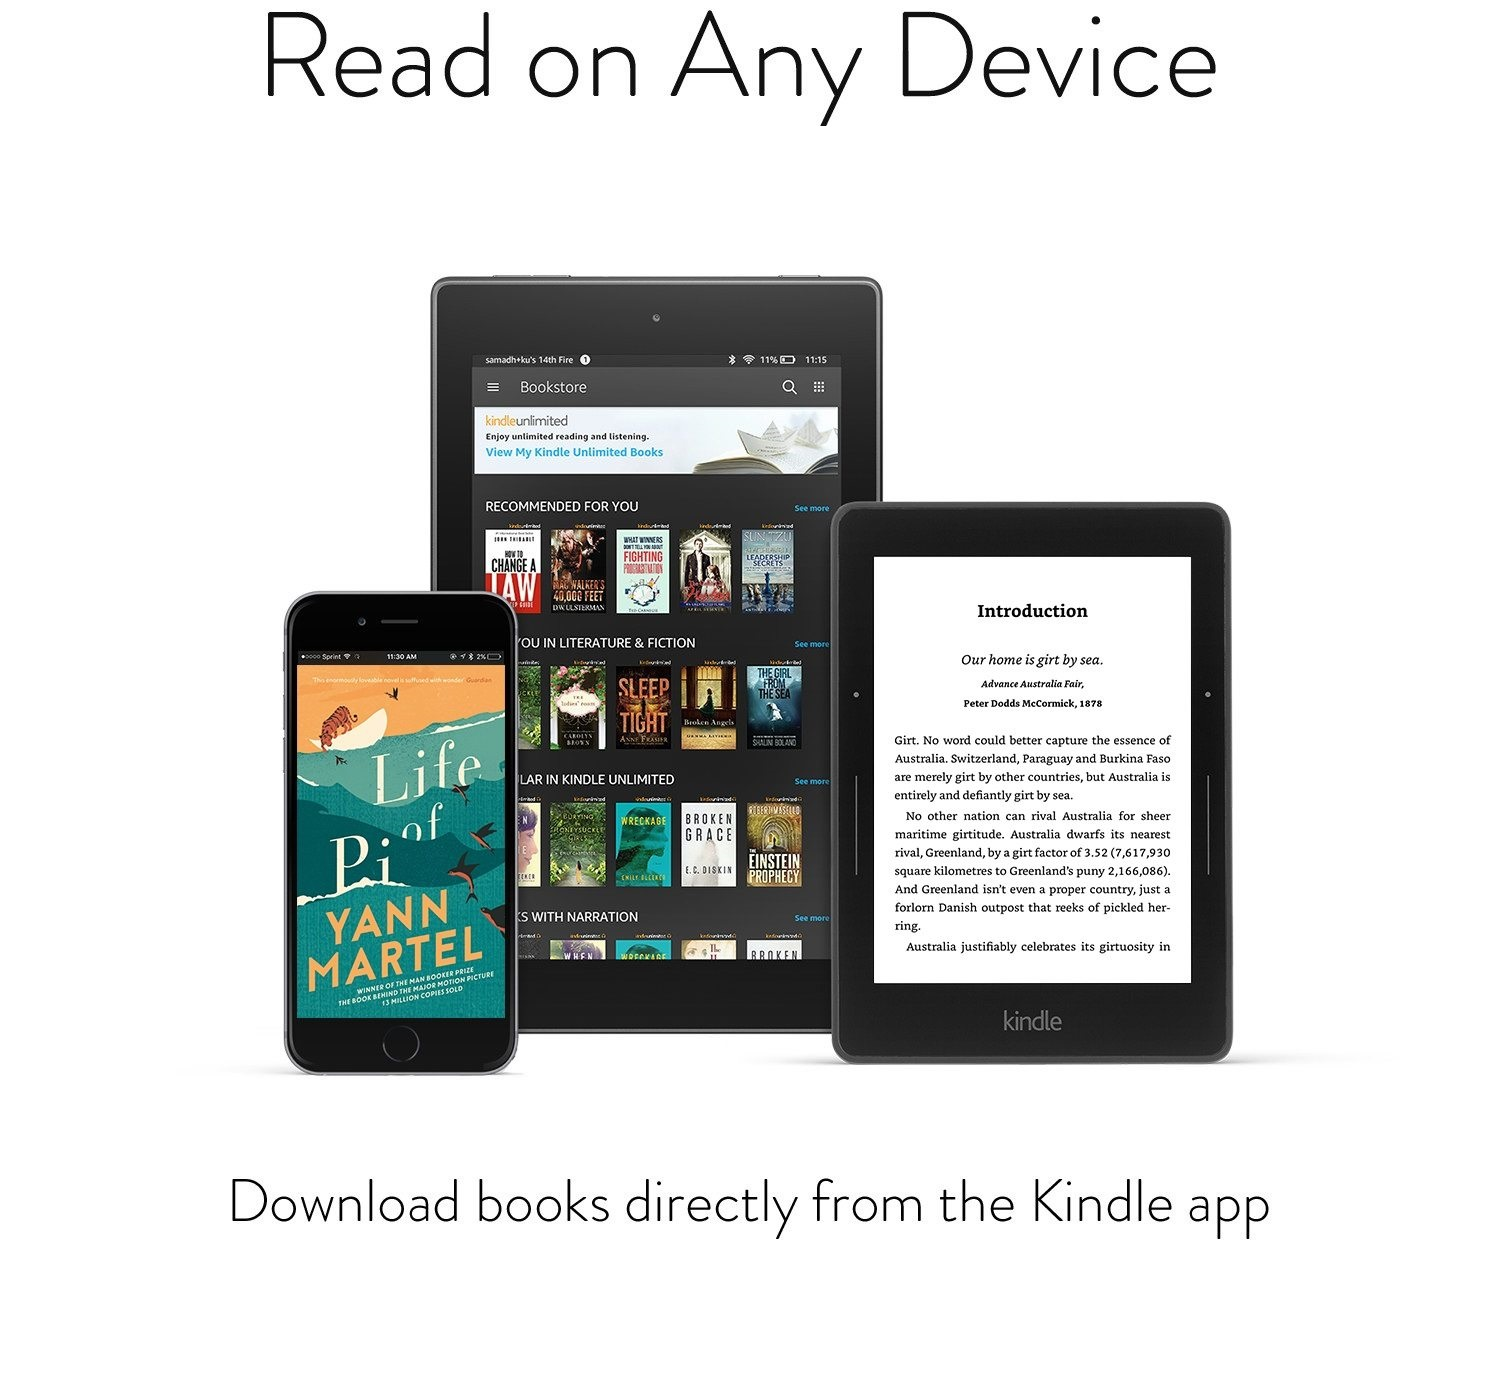 Download books directly from the Kindle app - You don't need to own a Kindle device to enjoy Kindle Unlimited. With our free Kindle reading apps, you can download Kindle Unlimited books anywhere, anytime and keep up to 10 books at a time on your device.